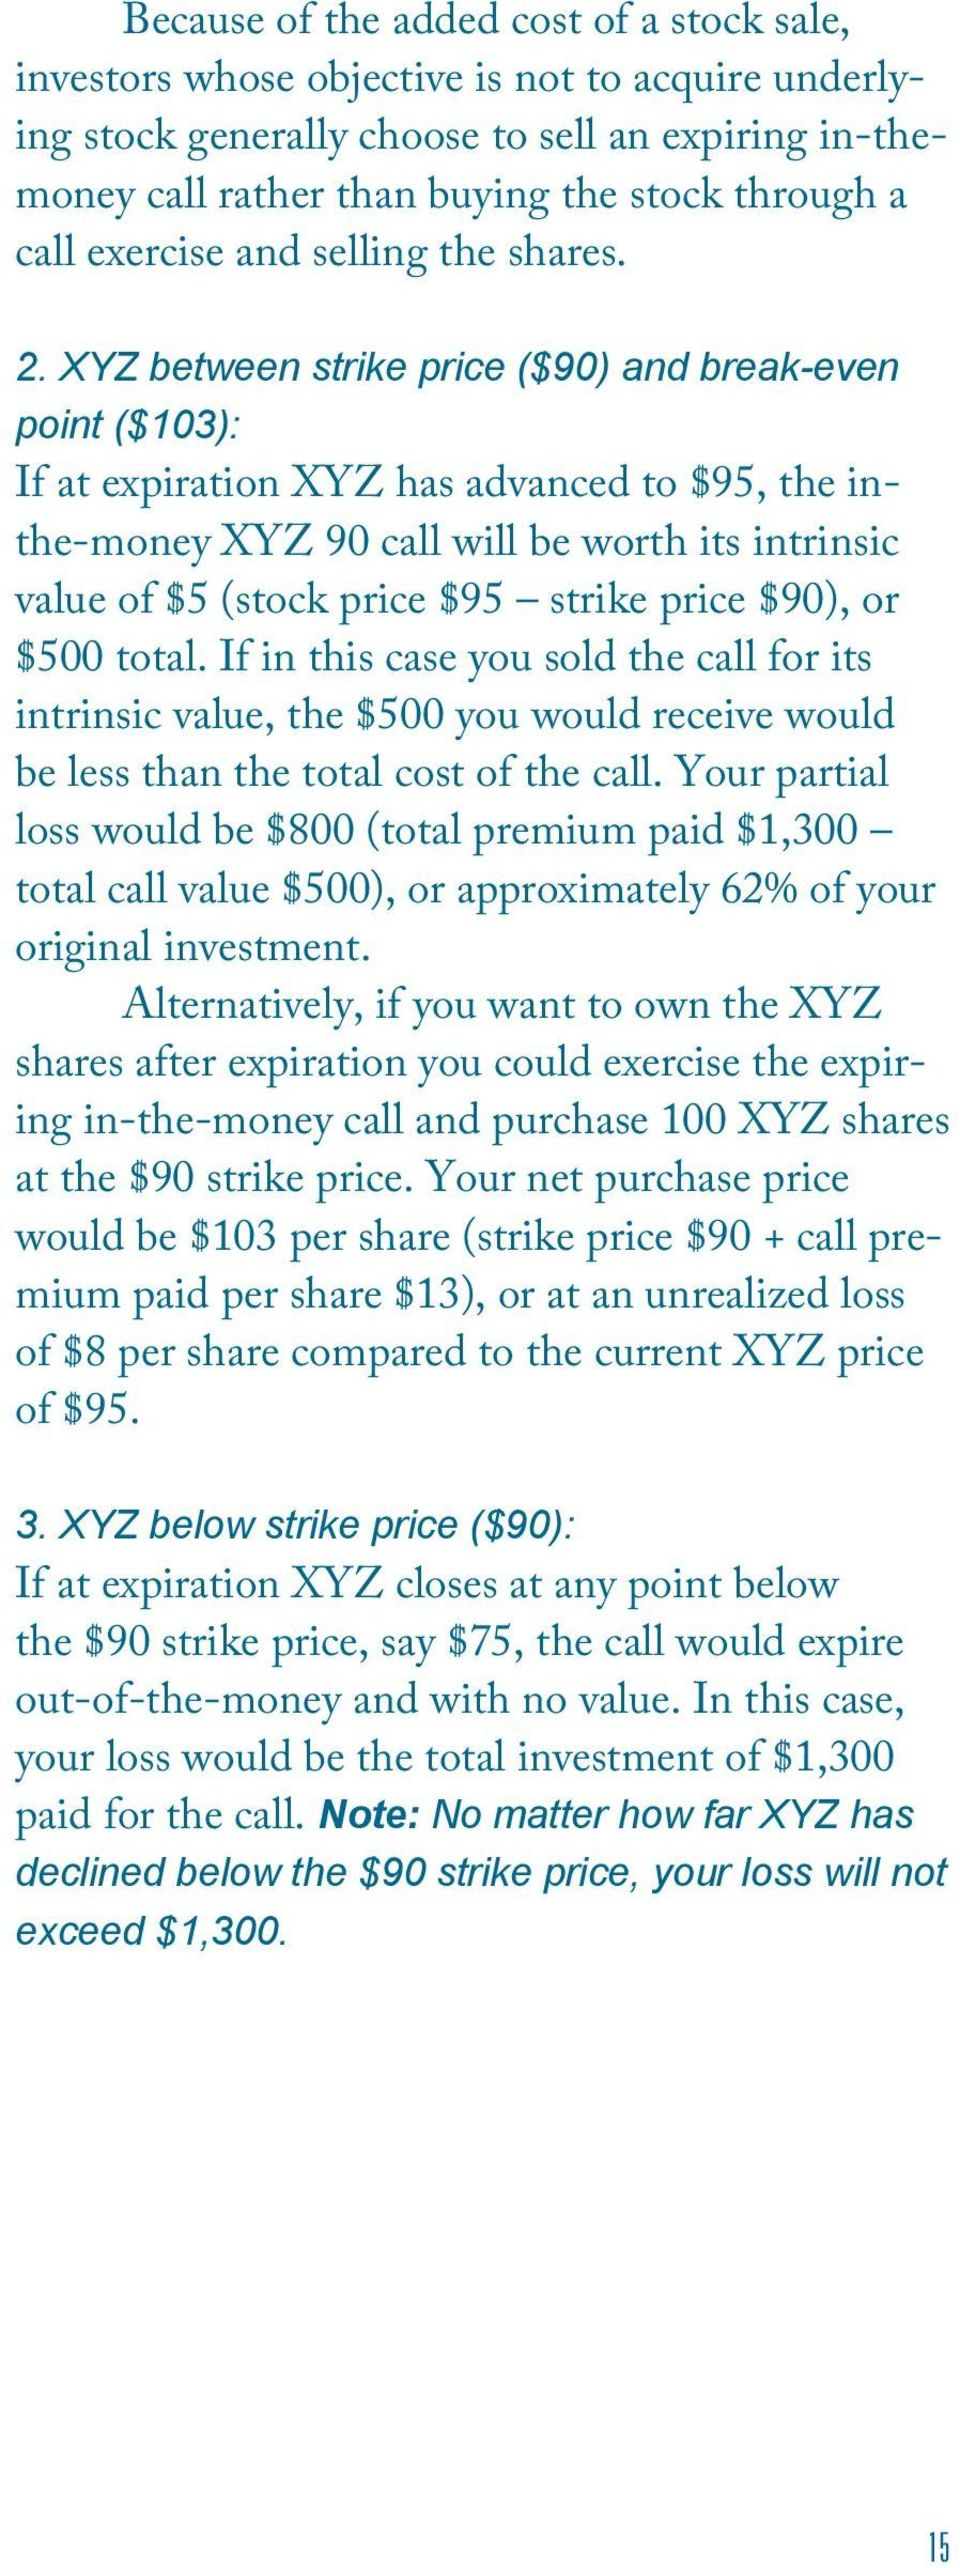 XYZ between strike price ($90) and break-even point ($103): If at expiration XYZ has advanced to $95, the inthe-money XYZ 90 call will be worth its intrinsic value of $5 (stock price $95 strike price